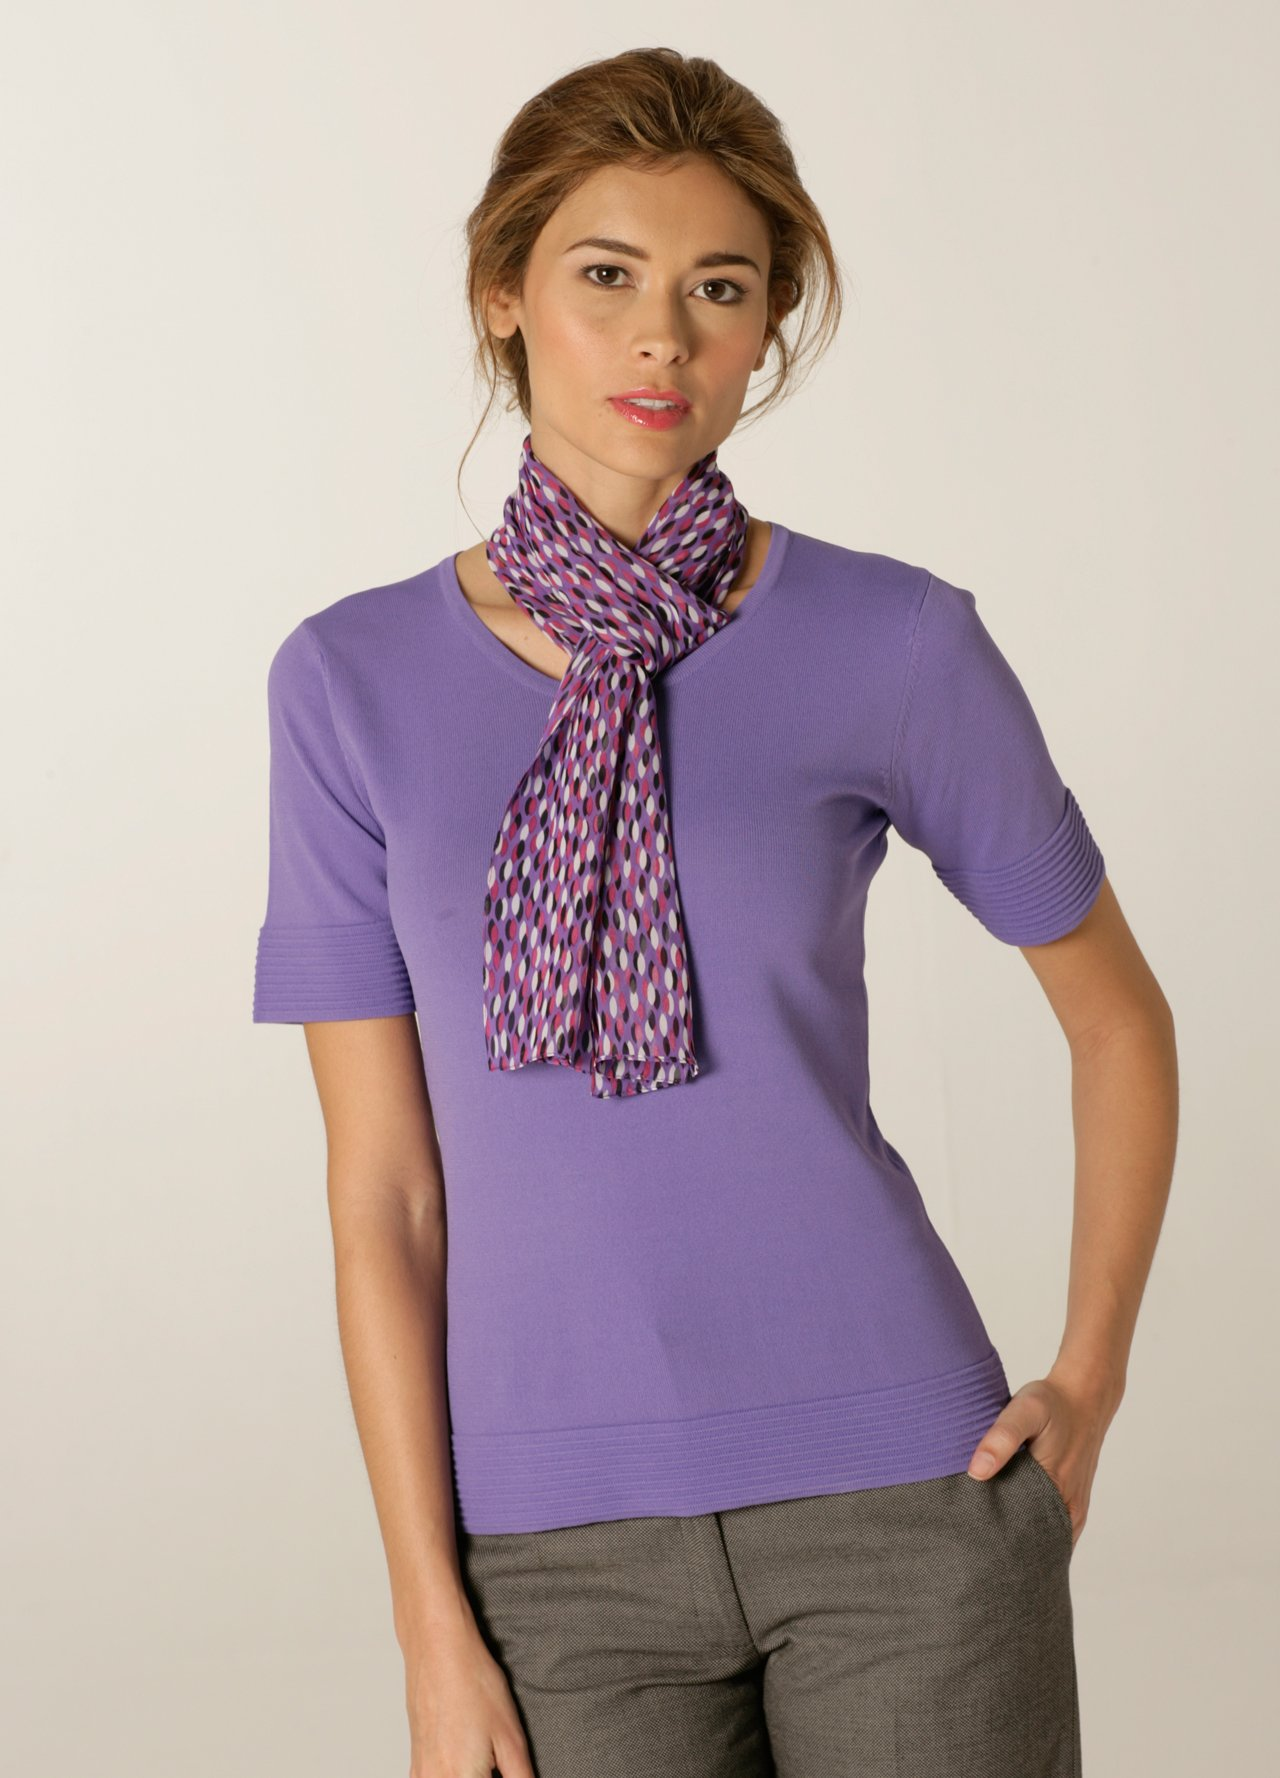 Ties, cravats and scarves can all be ordered in your corporate colours.